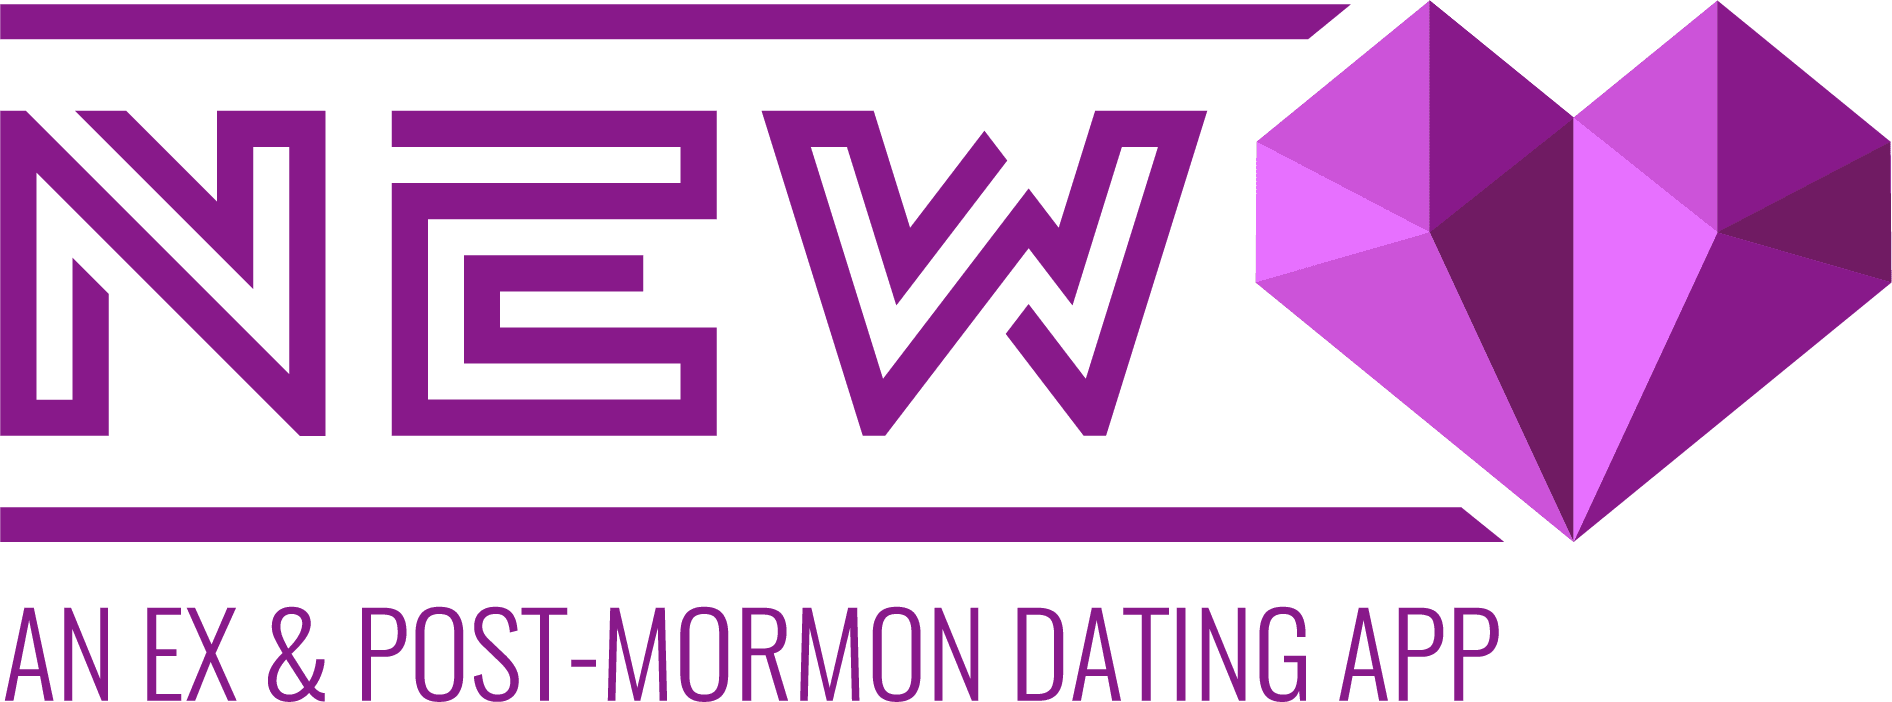 'NEW :: AN EX-MORMON DATING APP' CONNECTS INDIVIDUALS ON SIMILAR RELIGIOUS JOURNEYS